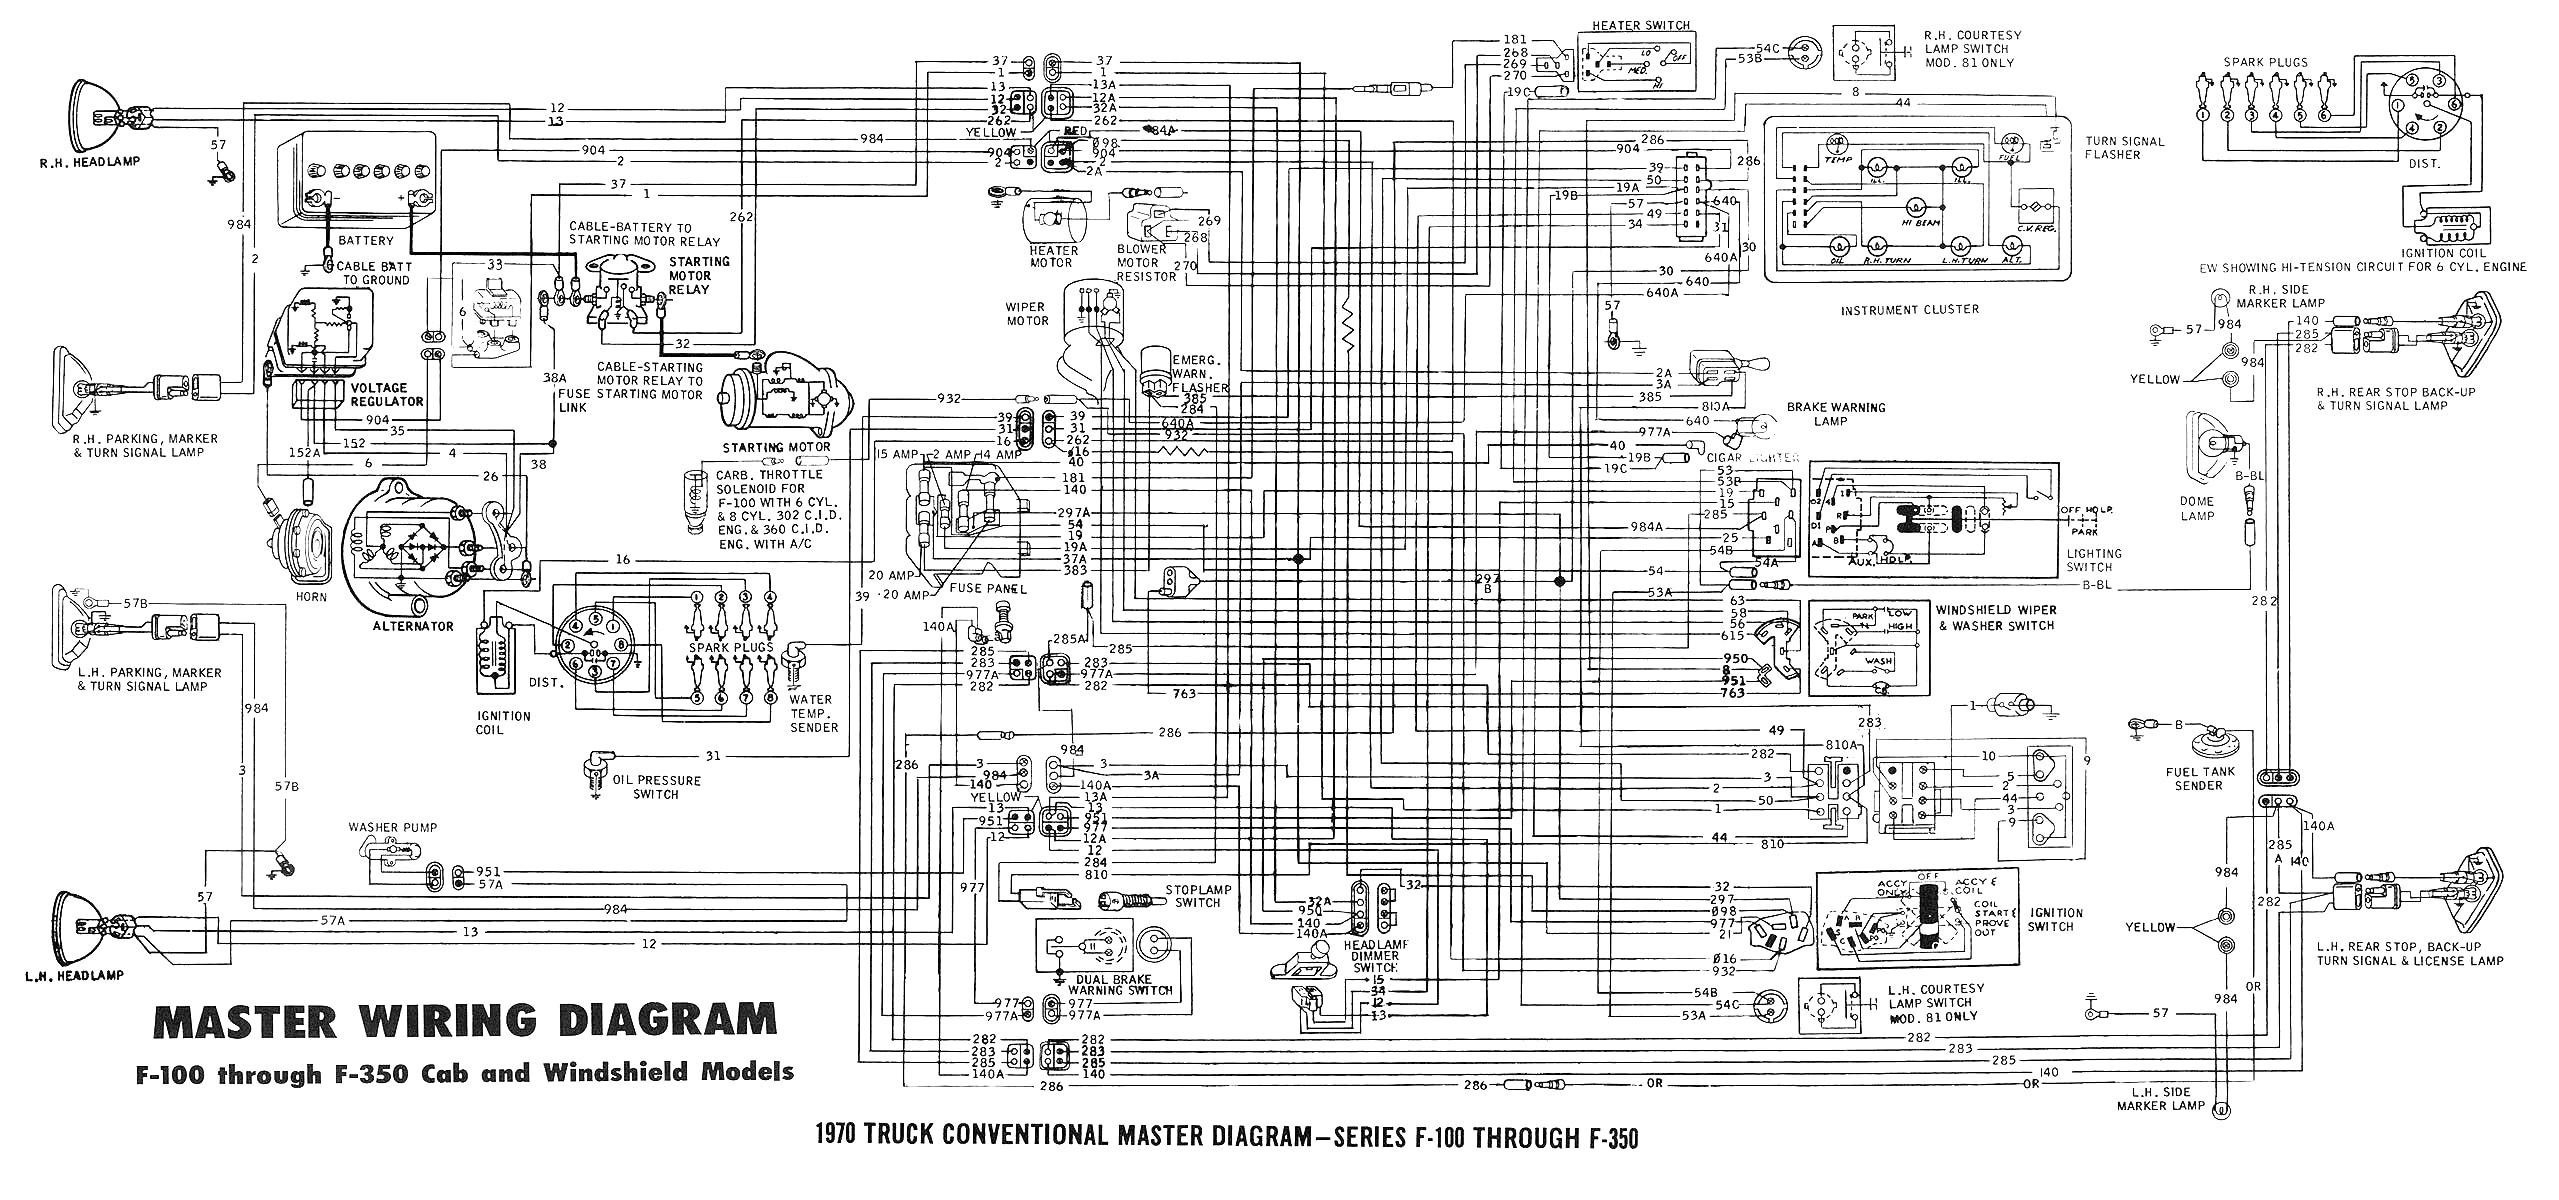 ford f250 wiring diagram online Collection-Toyota Wiring Diagram line Copy Wonderful Townace Electrical Best Ford F250 16-s